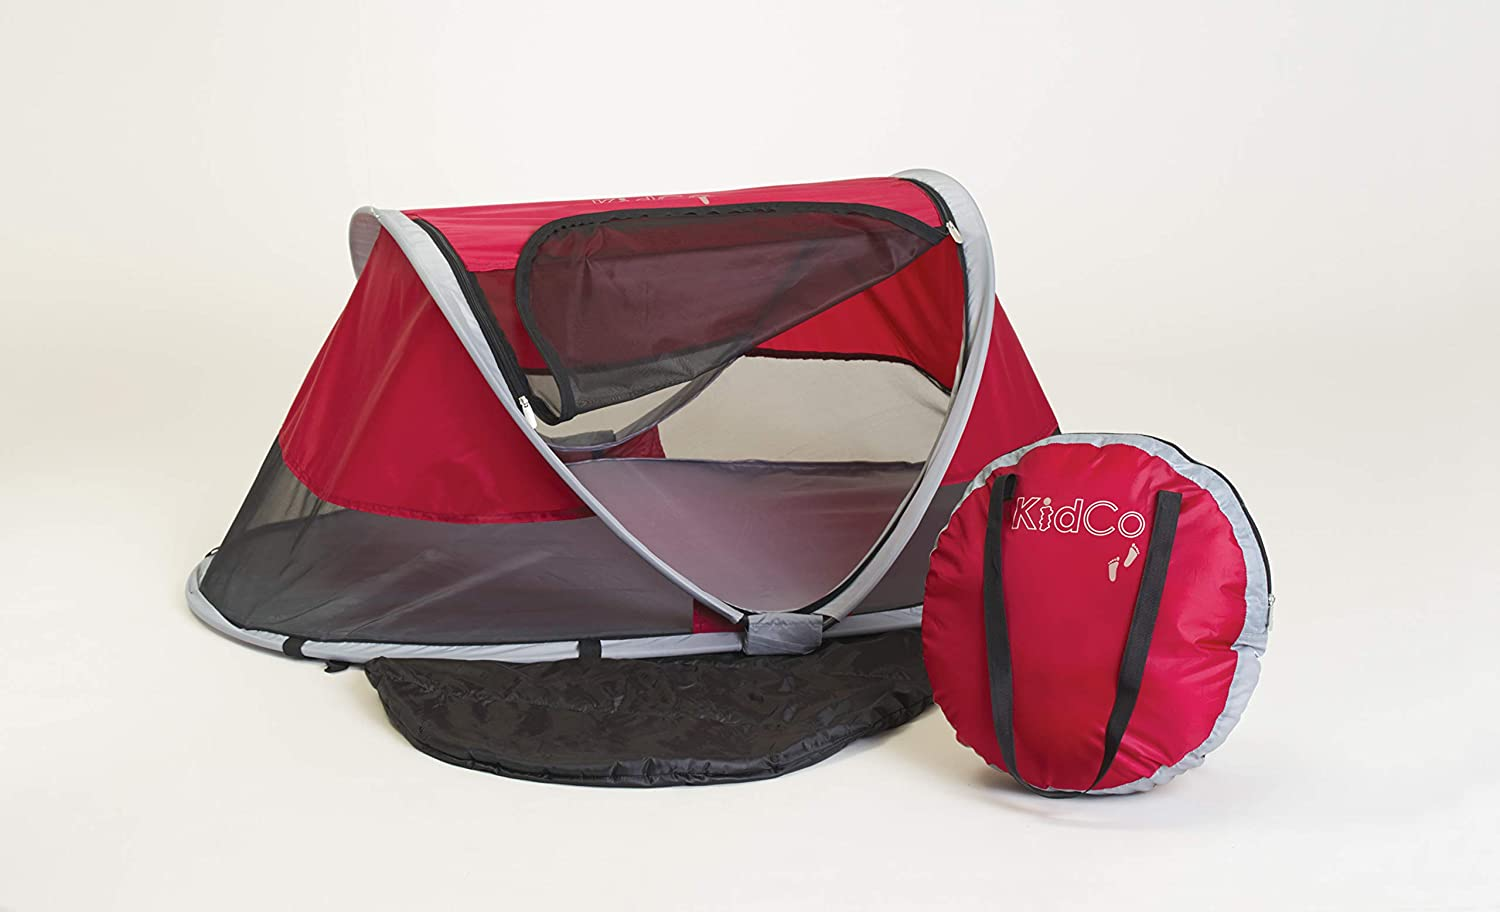 KidCo sale P3010 Peapod Portable unisex Indoor Travel Outdoor Bed Cranberry